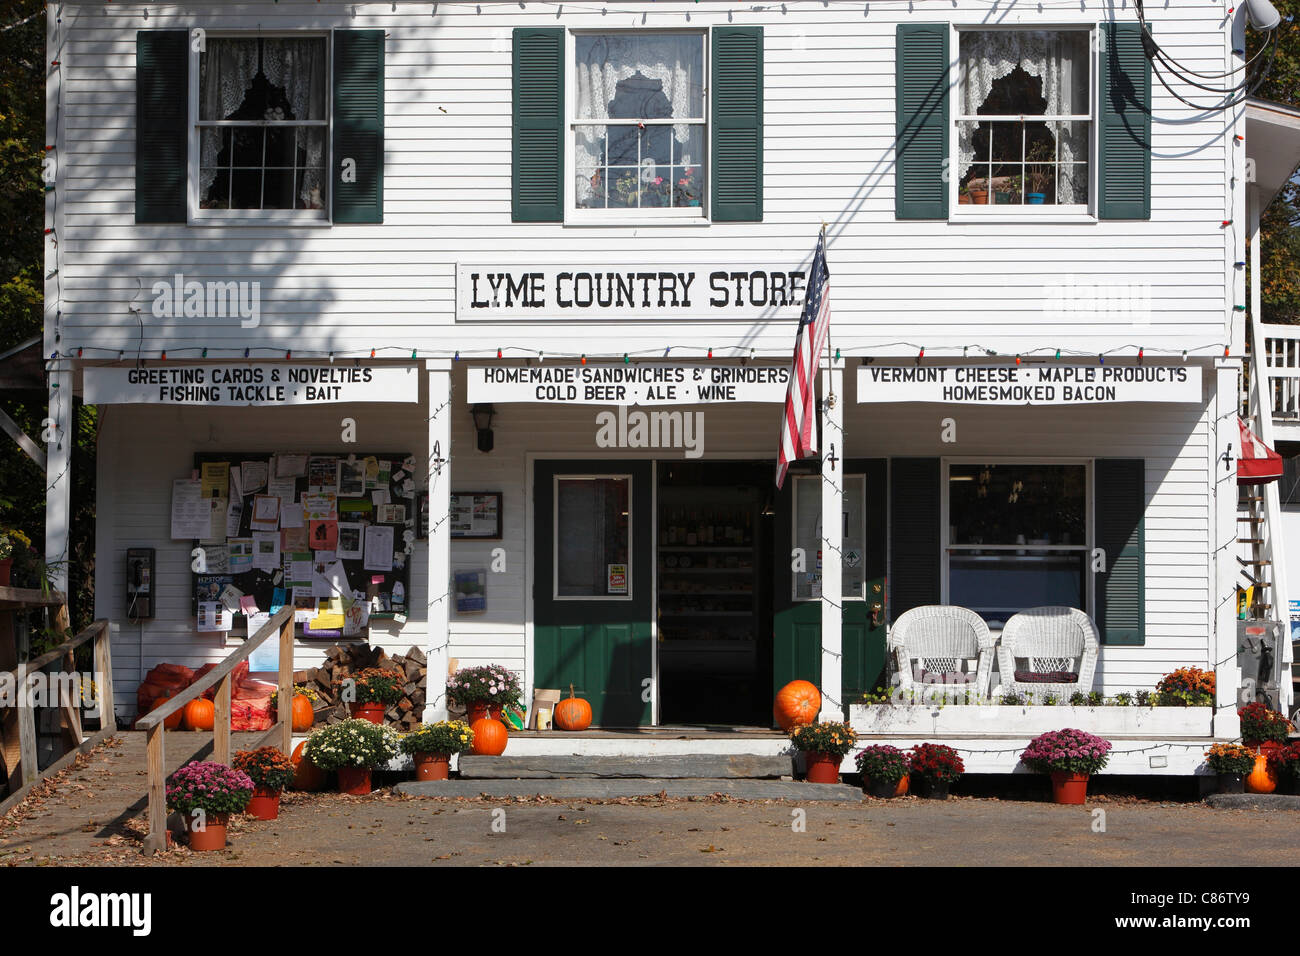 Country store, Lyme, New Hampshire, USA Banque D'Images